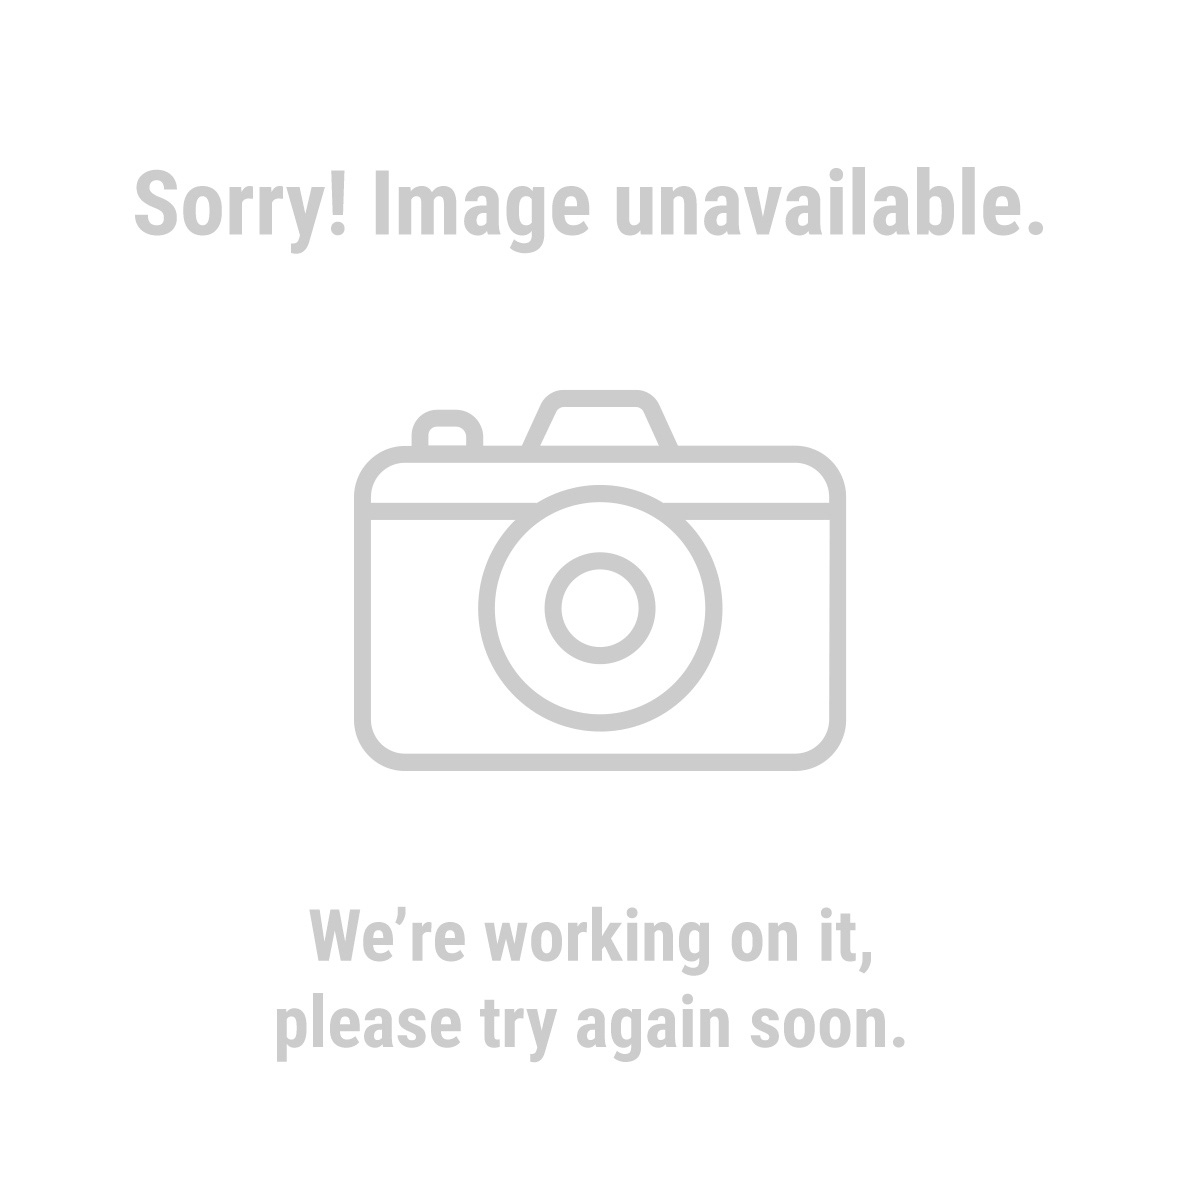 Western Safety 90912 Coated Rubber Grip Gloves, Large